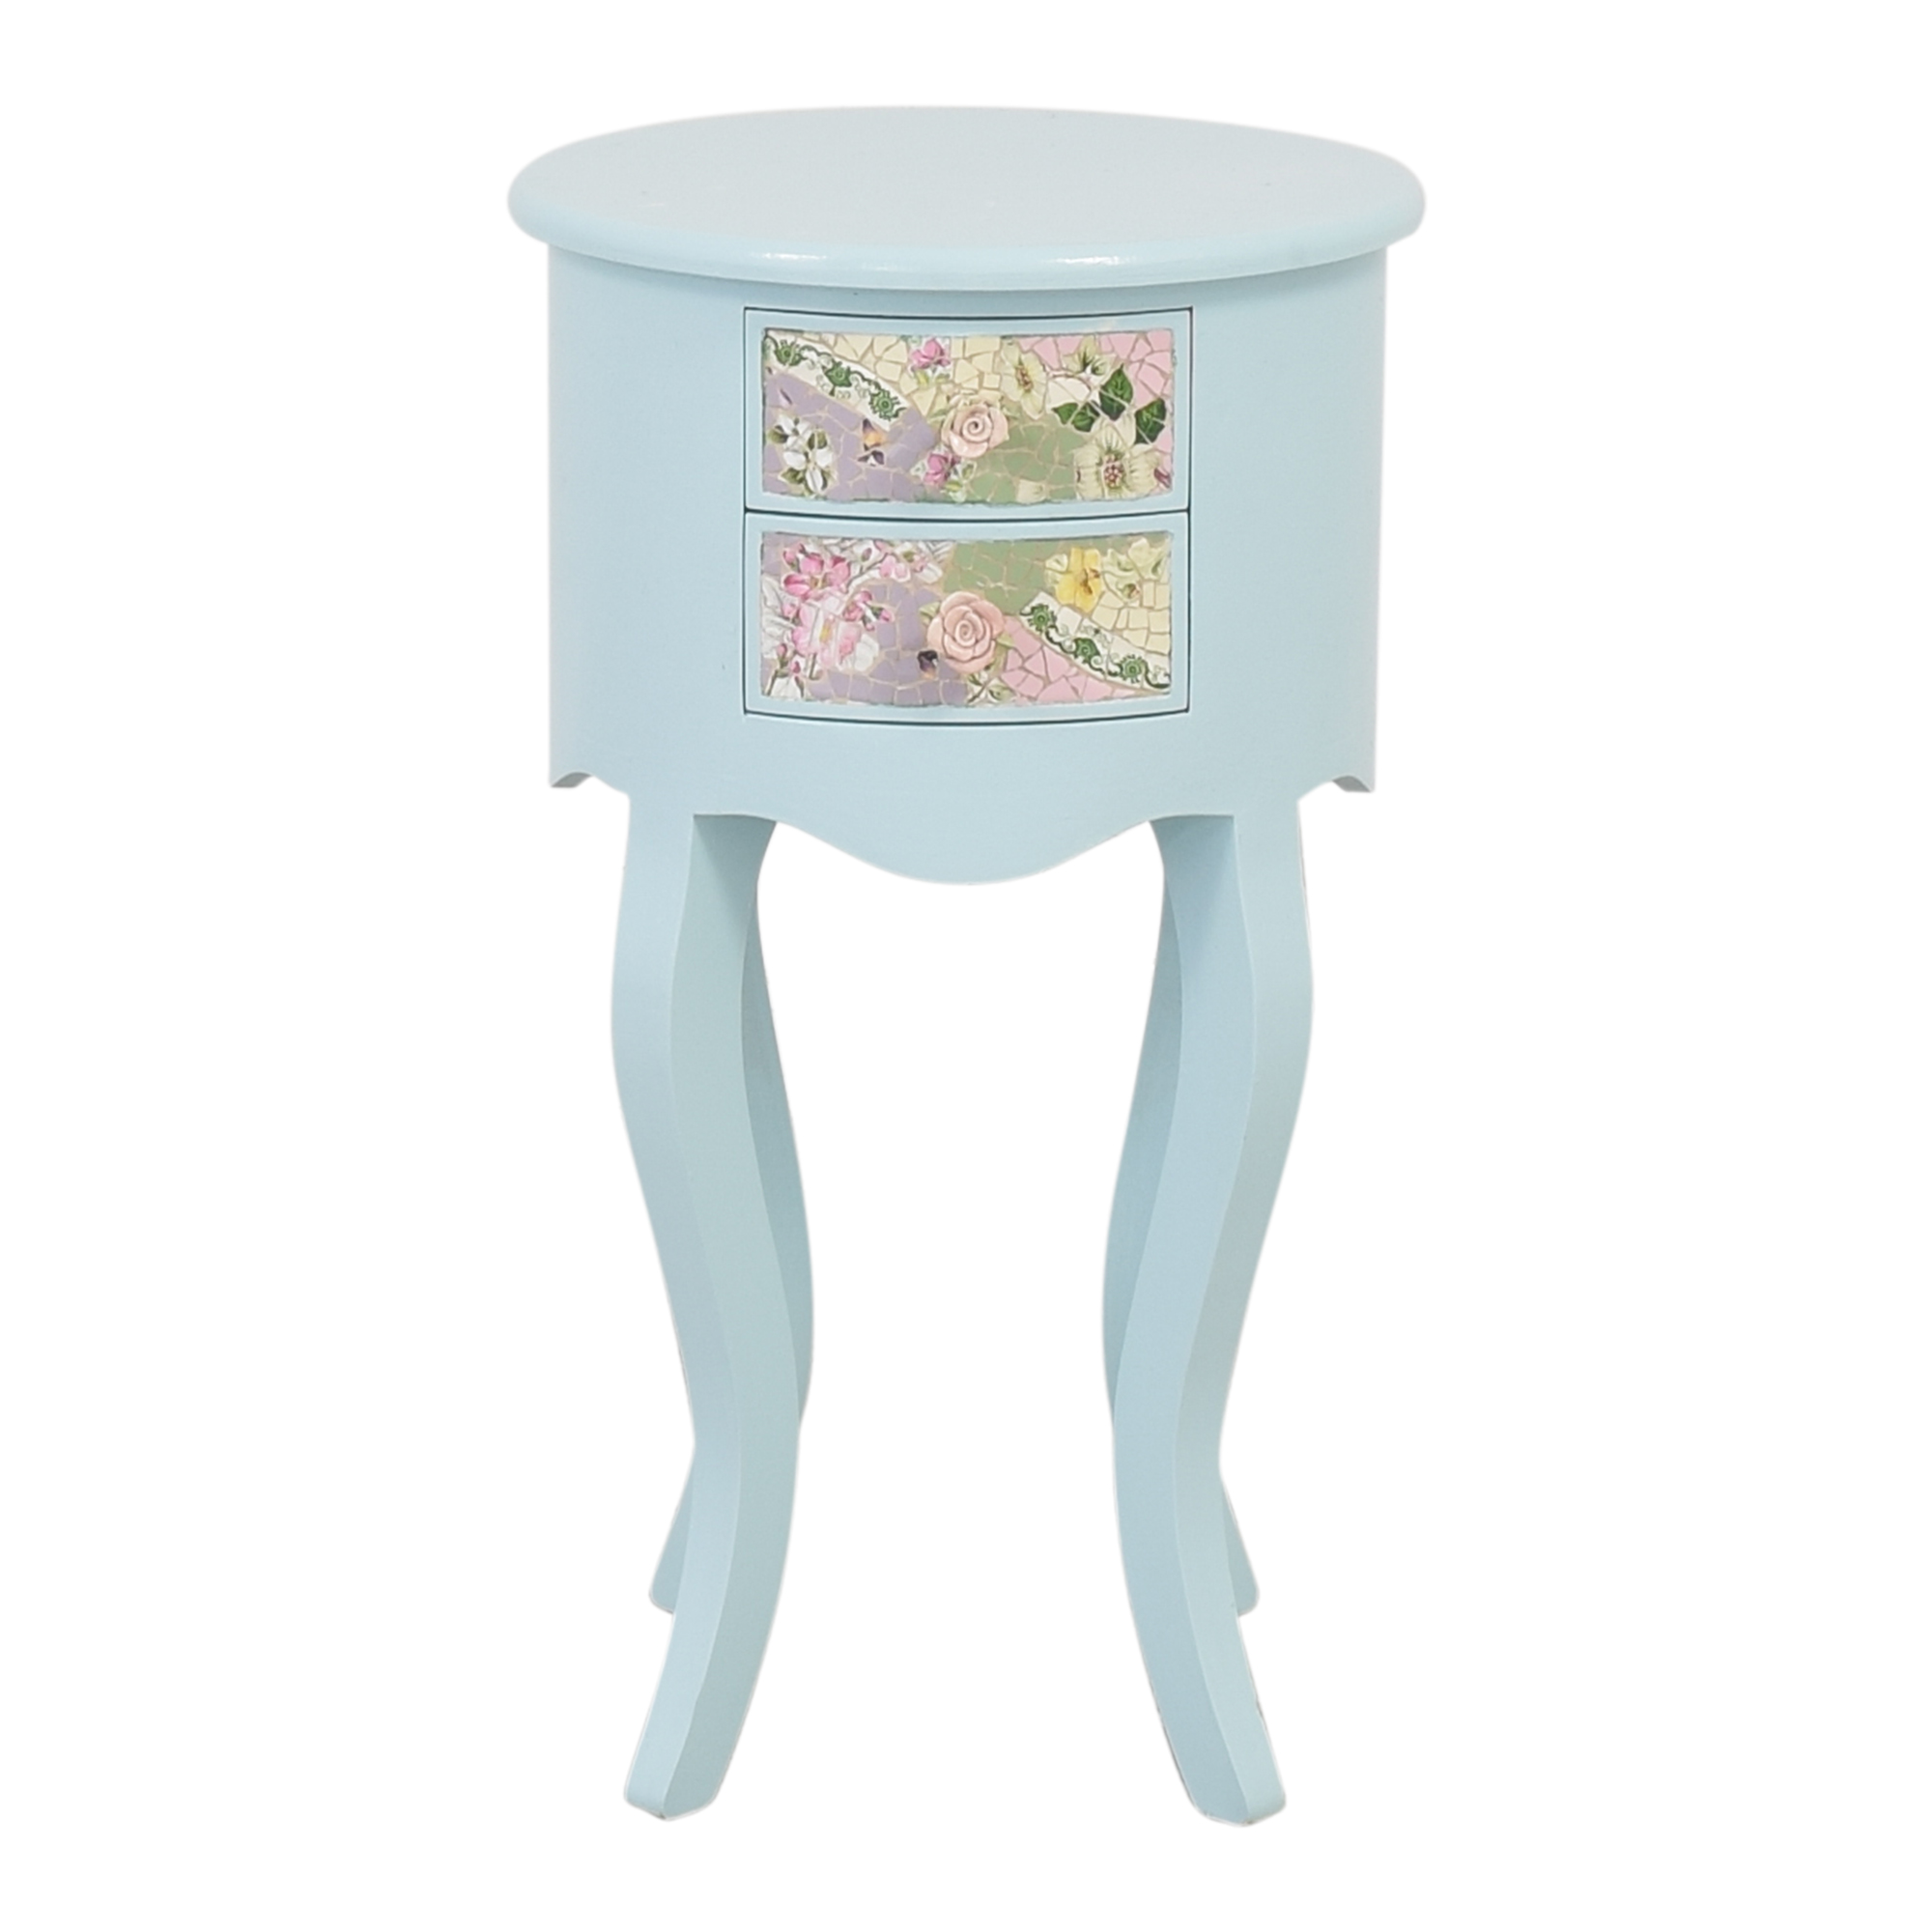 buy Mosaic Bedside Table